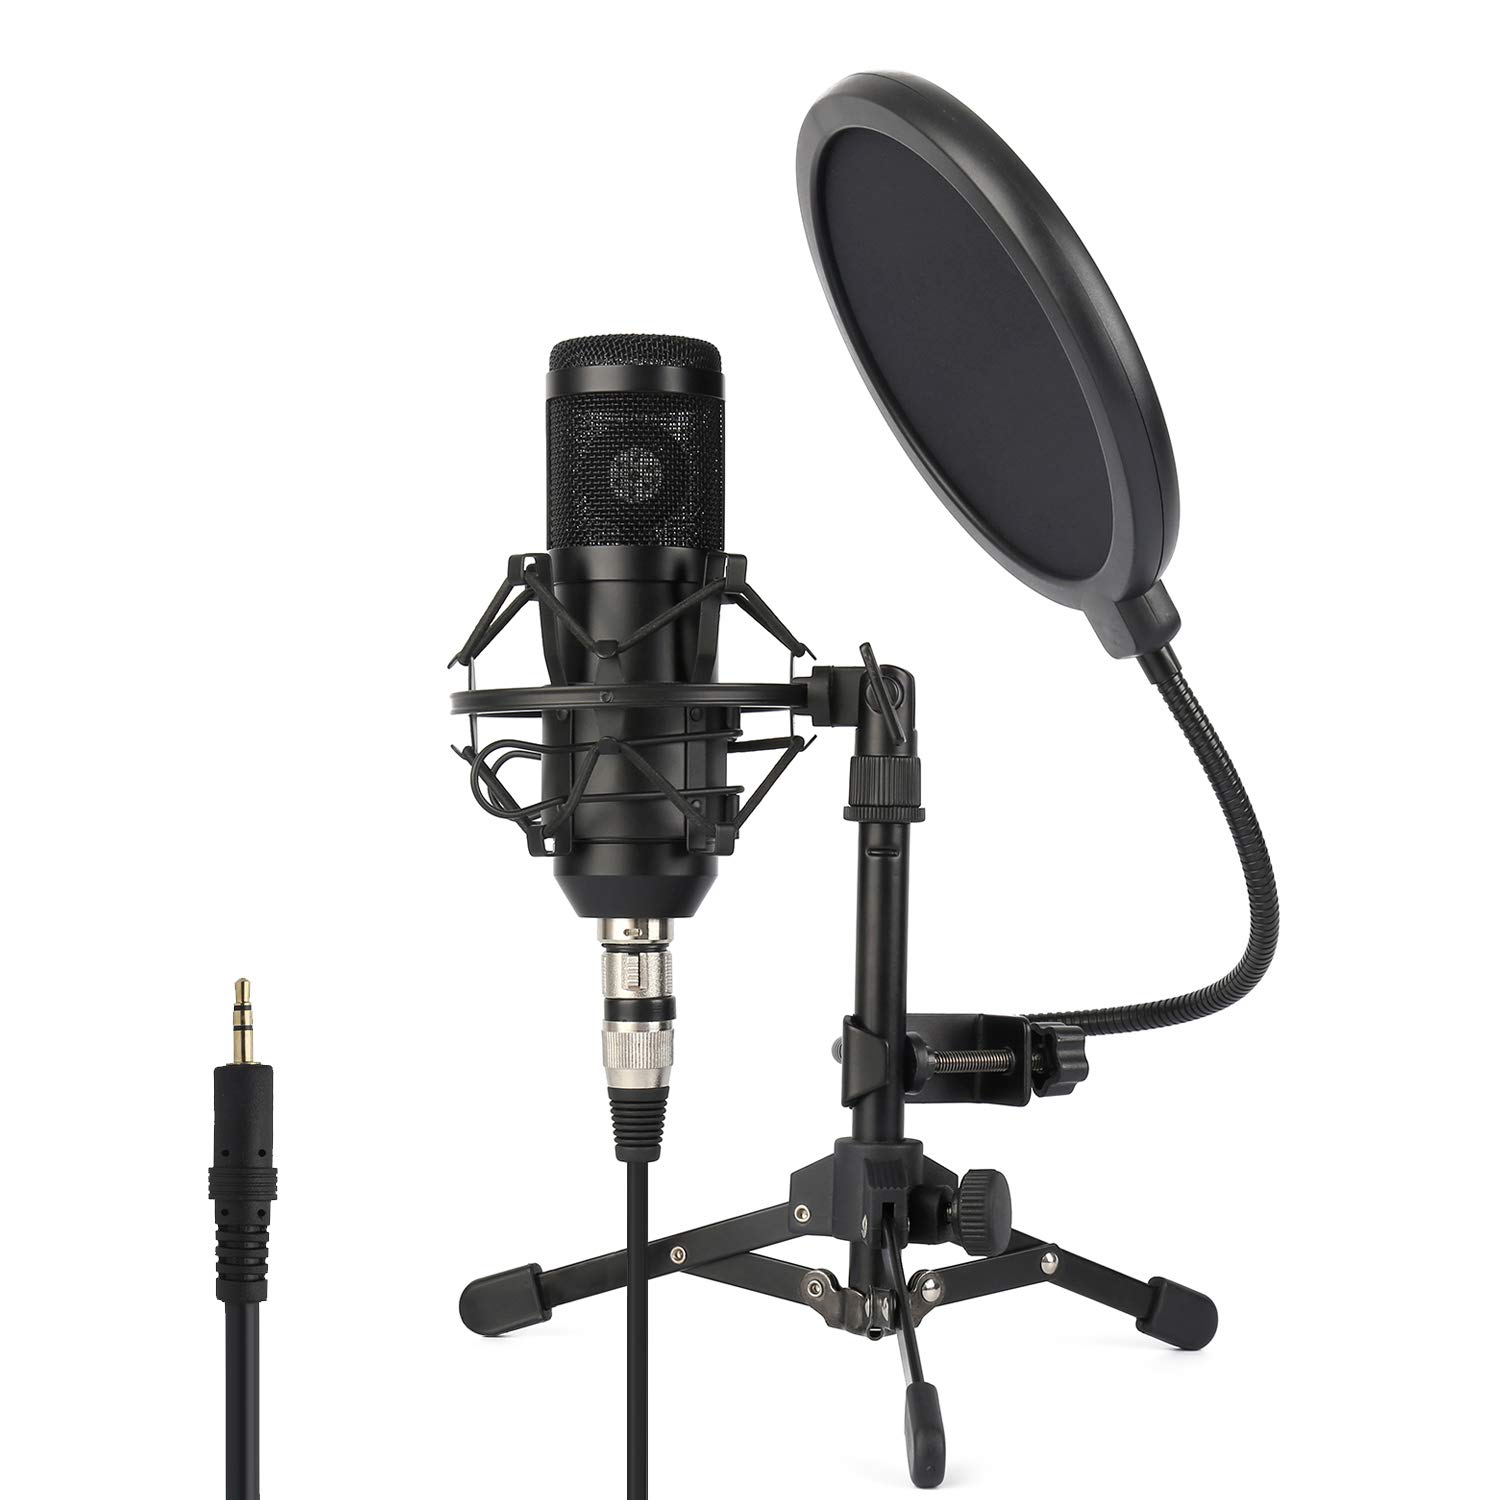 ZINGYOU Condenser Microphone ZY-801+, Professional Studio Microphone include Sound Card, Desktop Cardioid Condenser Mic, PC Recording and Broadcasting(Matte Black) by ZINGYOU (Image #1)